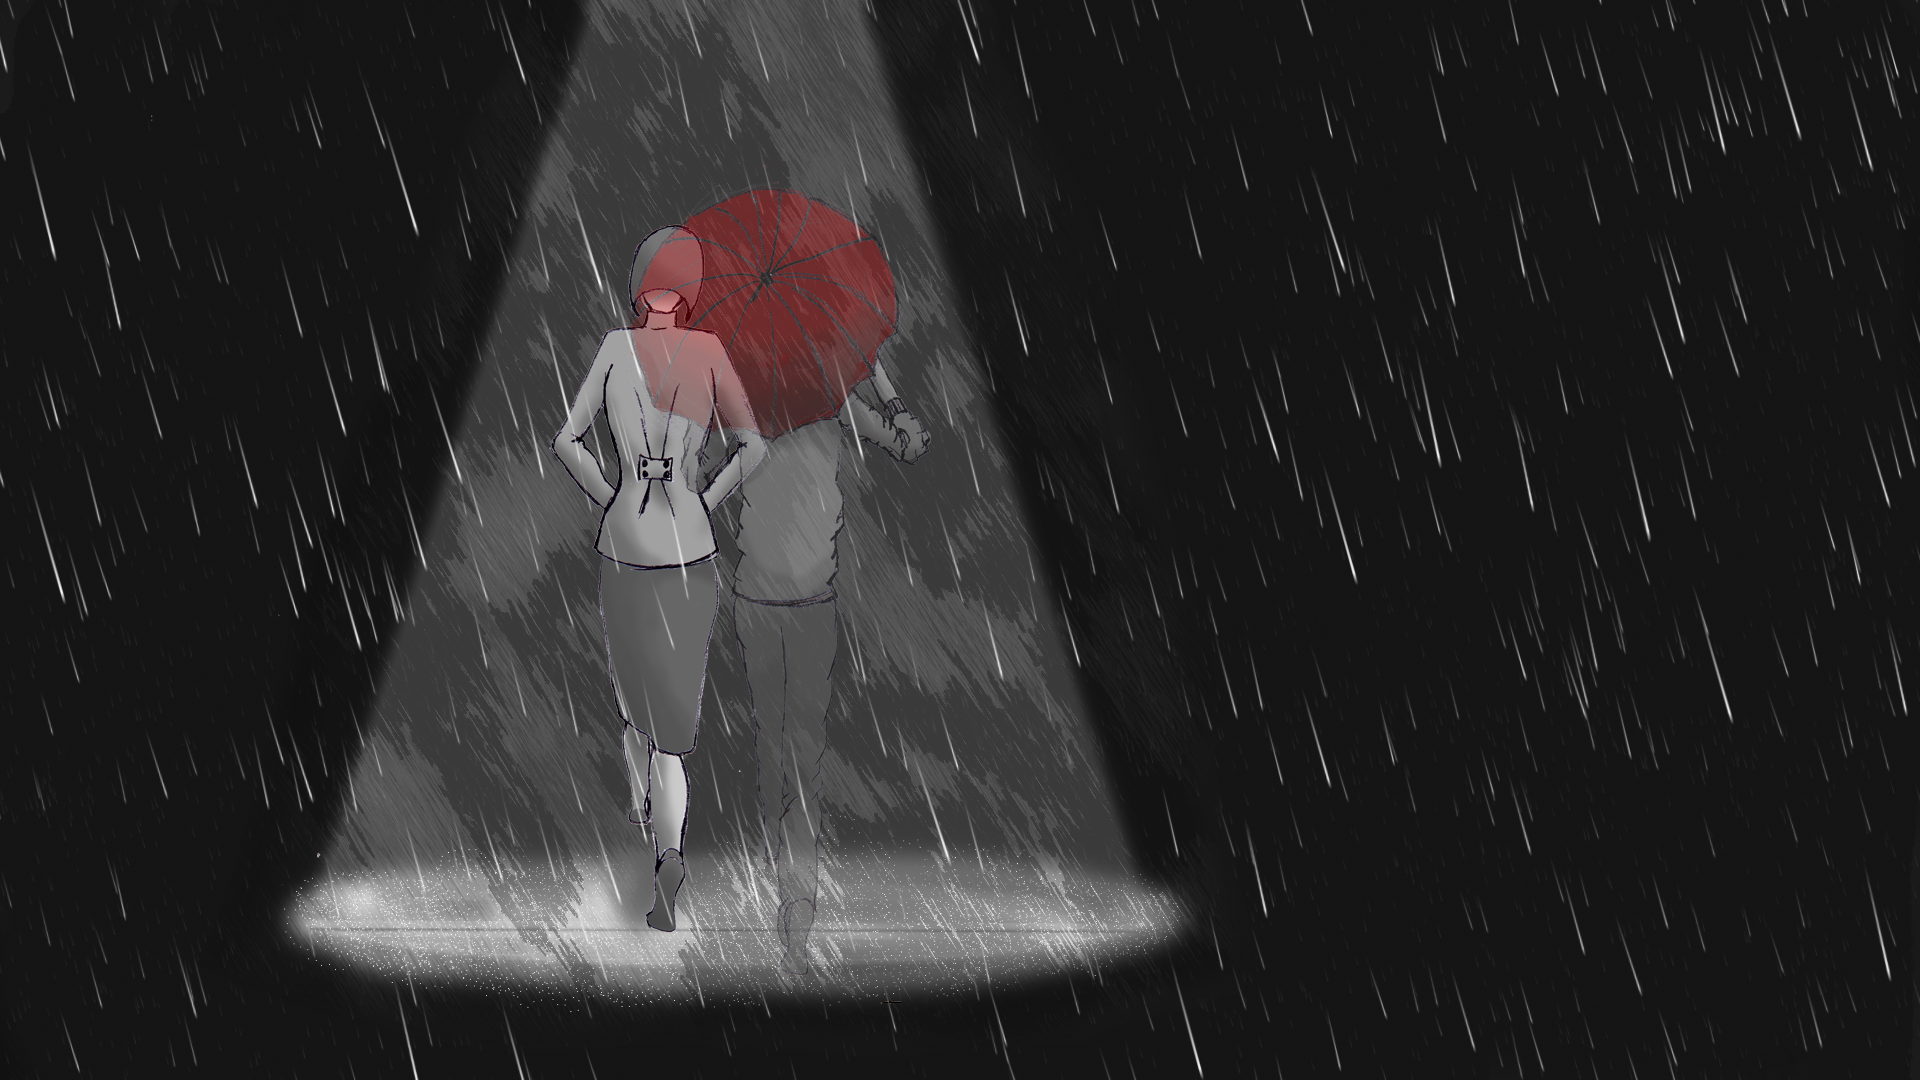 In the Rain - image 11 - student project